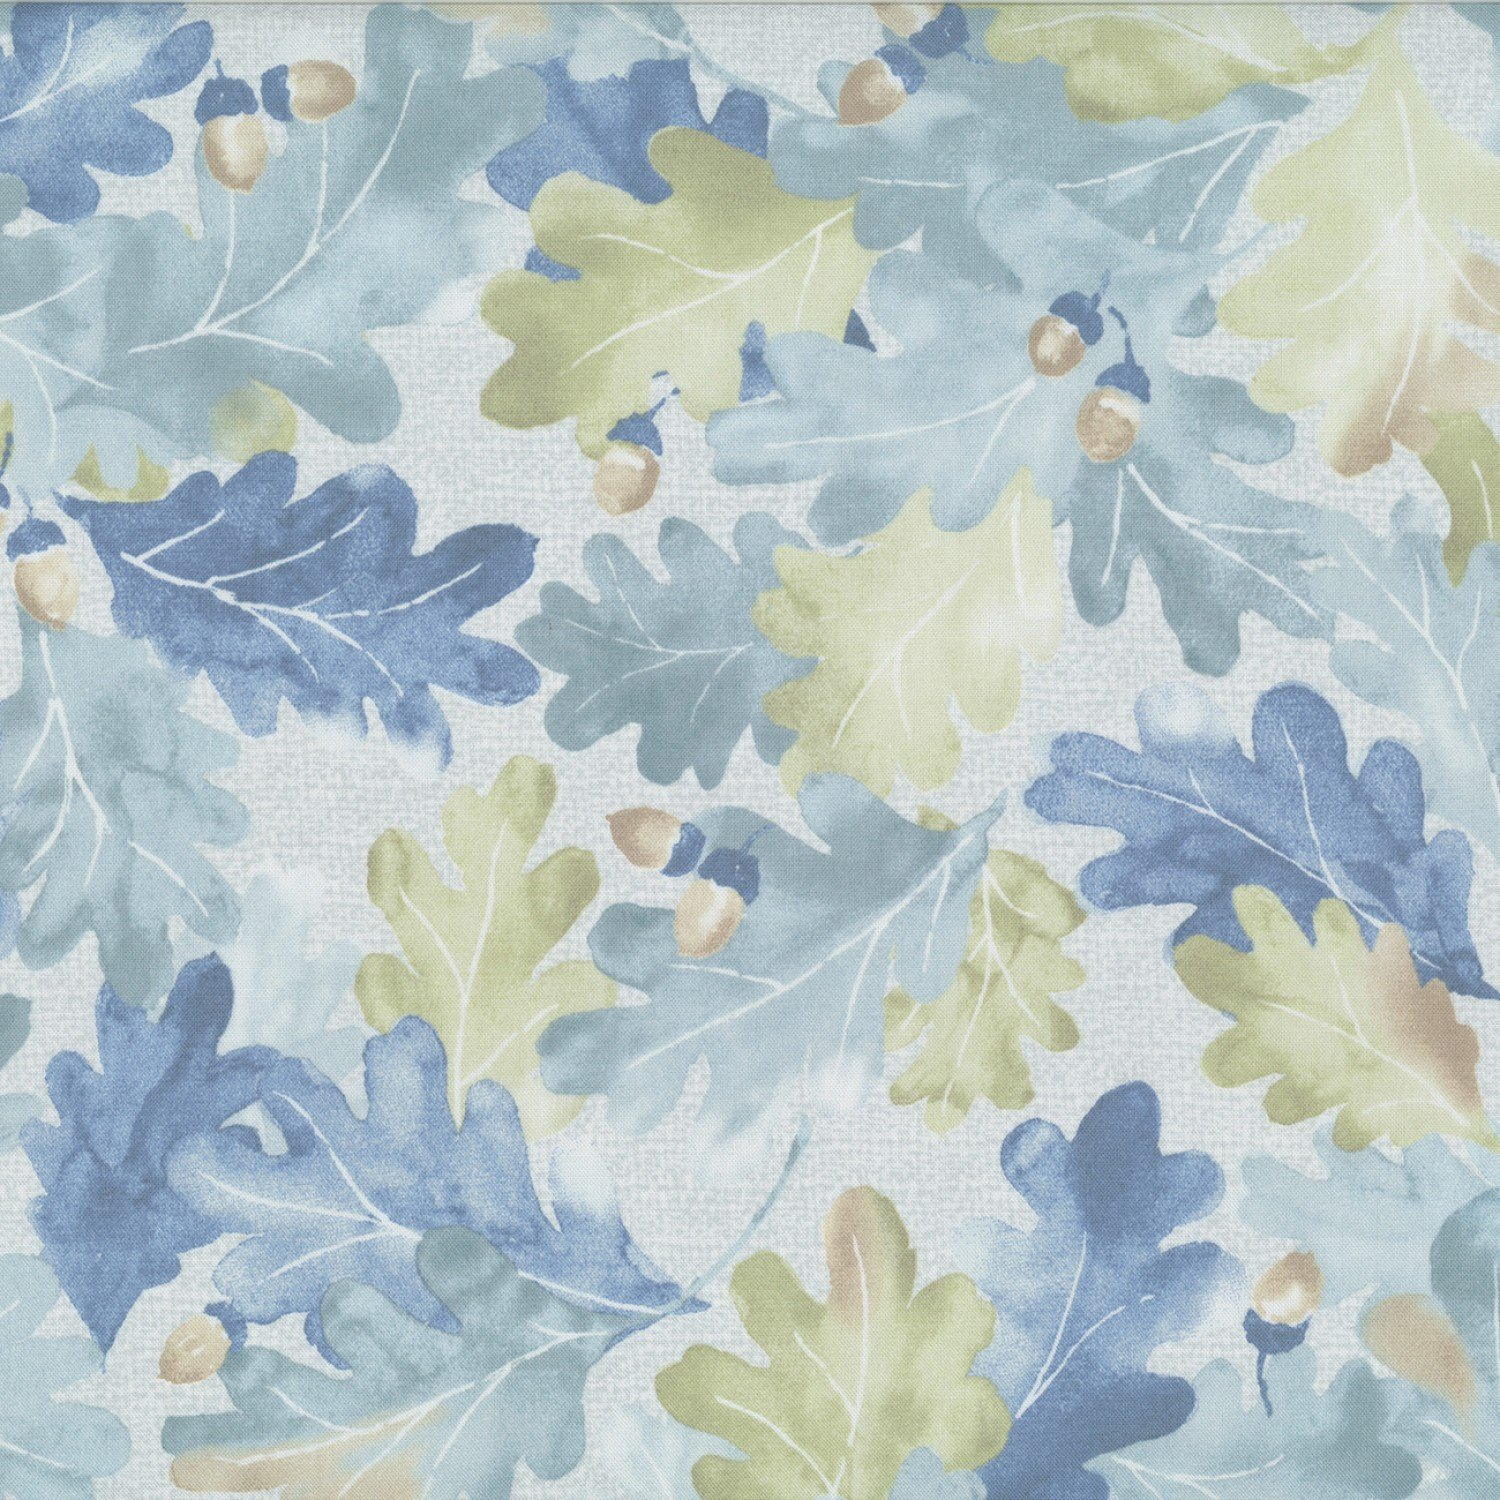 Centenary Collection - Blue Leaves